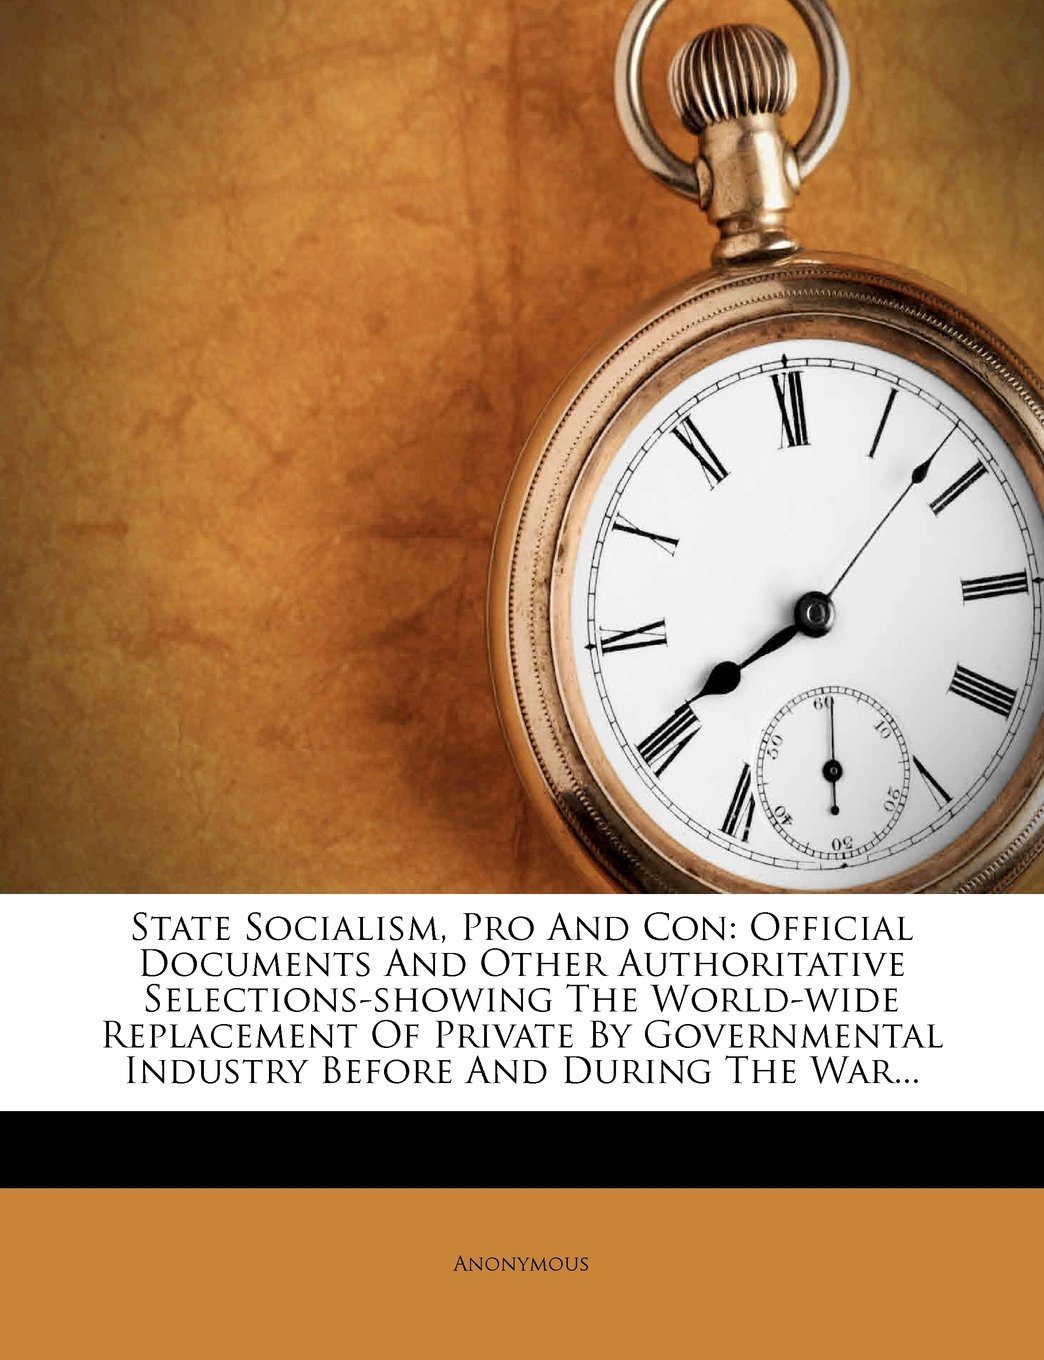 Download State Socialism, Pro And Con: Official Documents And Other Authoritative Selections-showing The World-wide Replacement Of Private By Governmental Industry Before And During The War... PDF